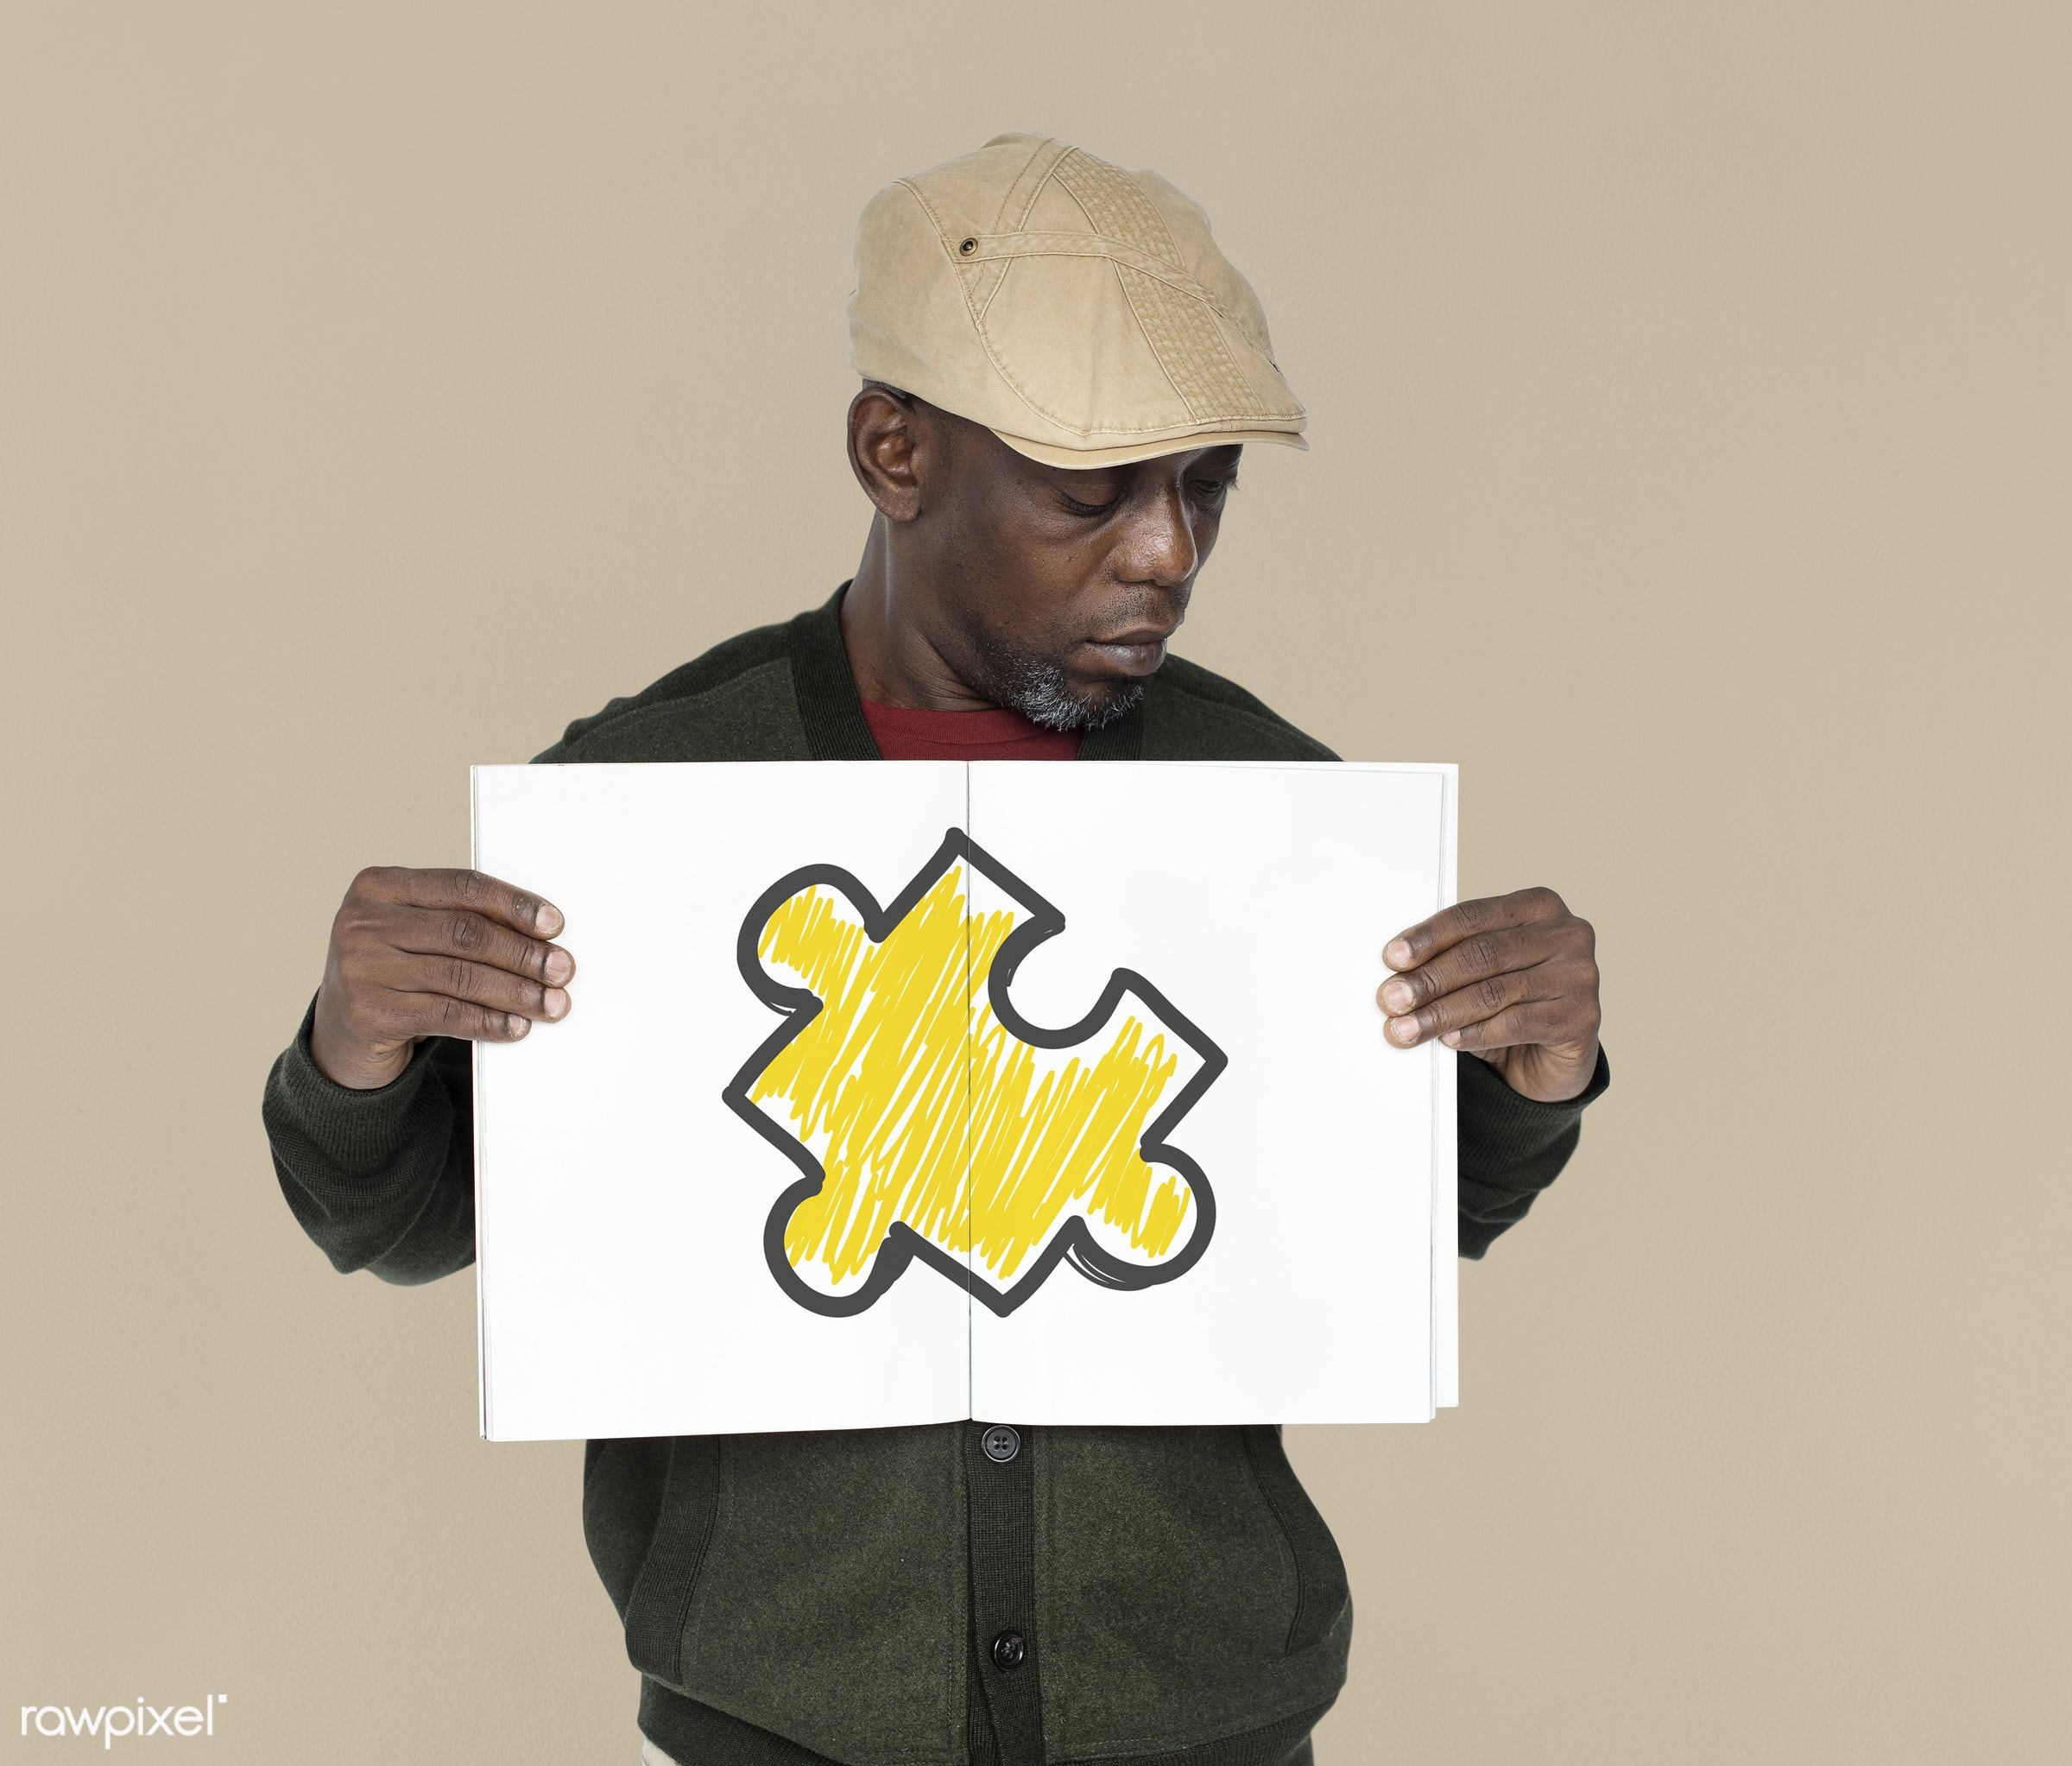 studio, expression, person, placing, emblem, jigsaw, holding, people, placard, teamwork, inspiration, empty, piece, black,...